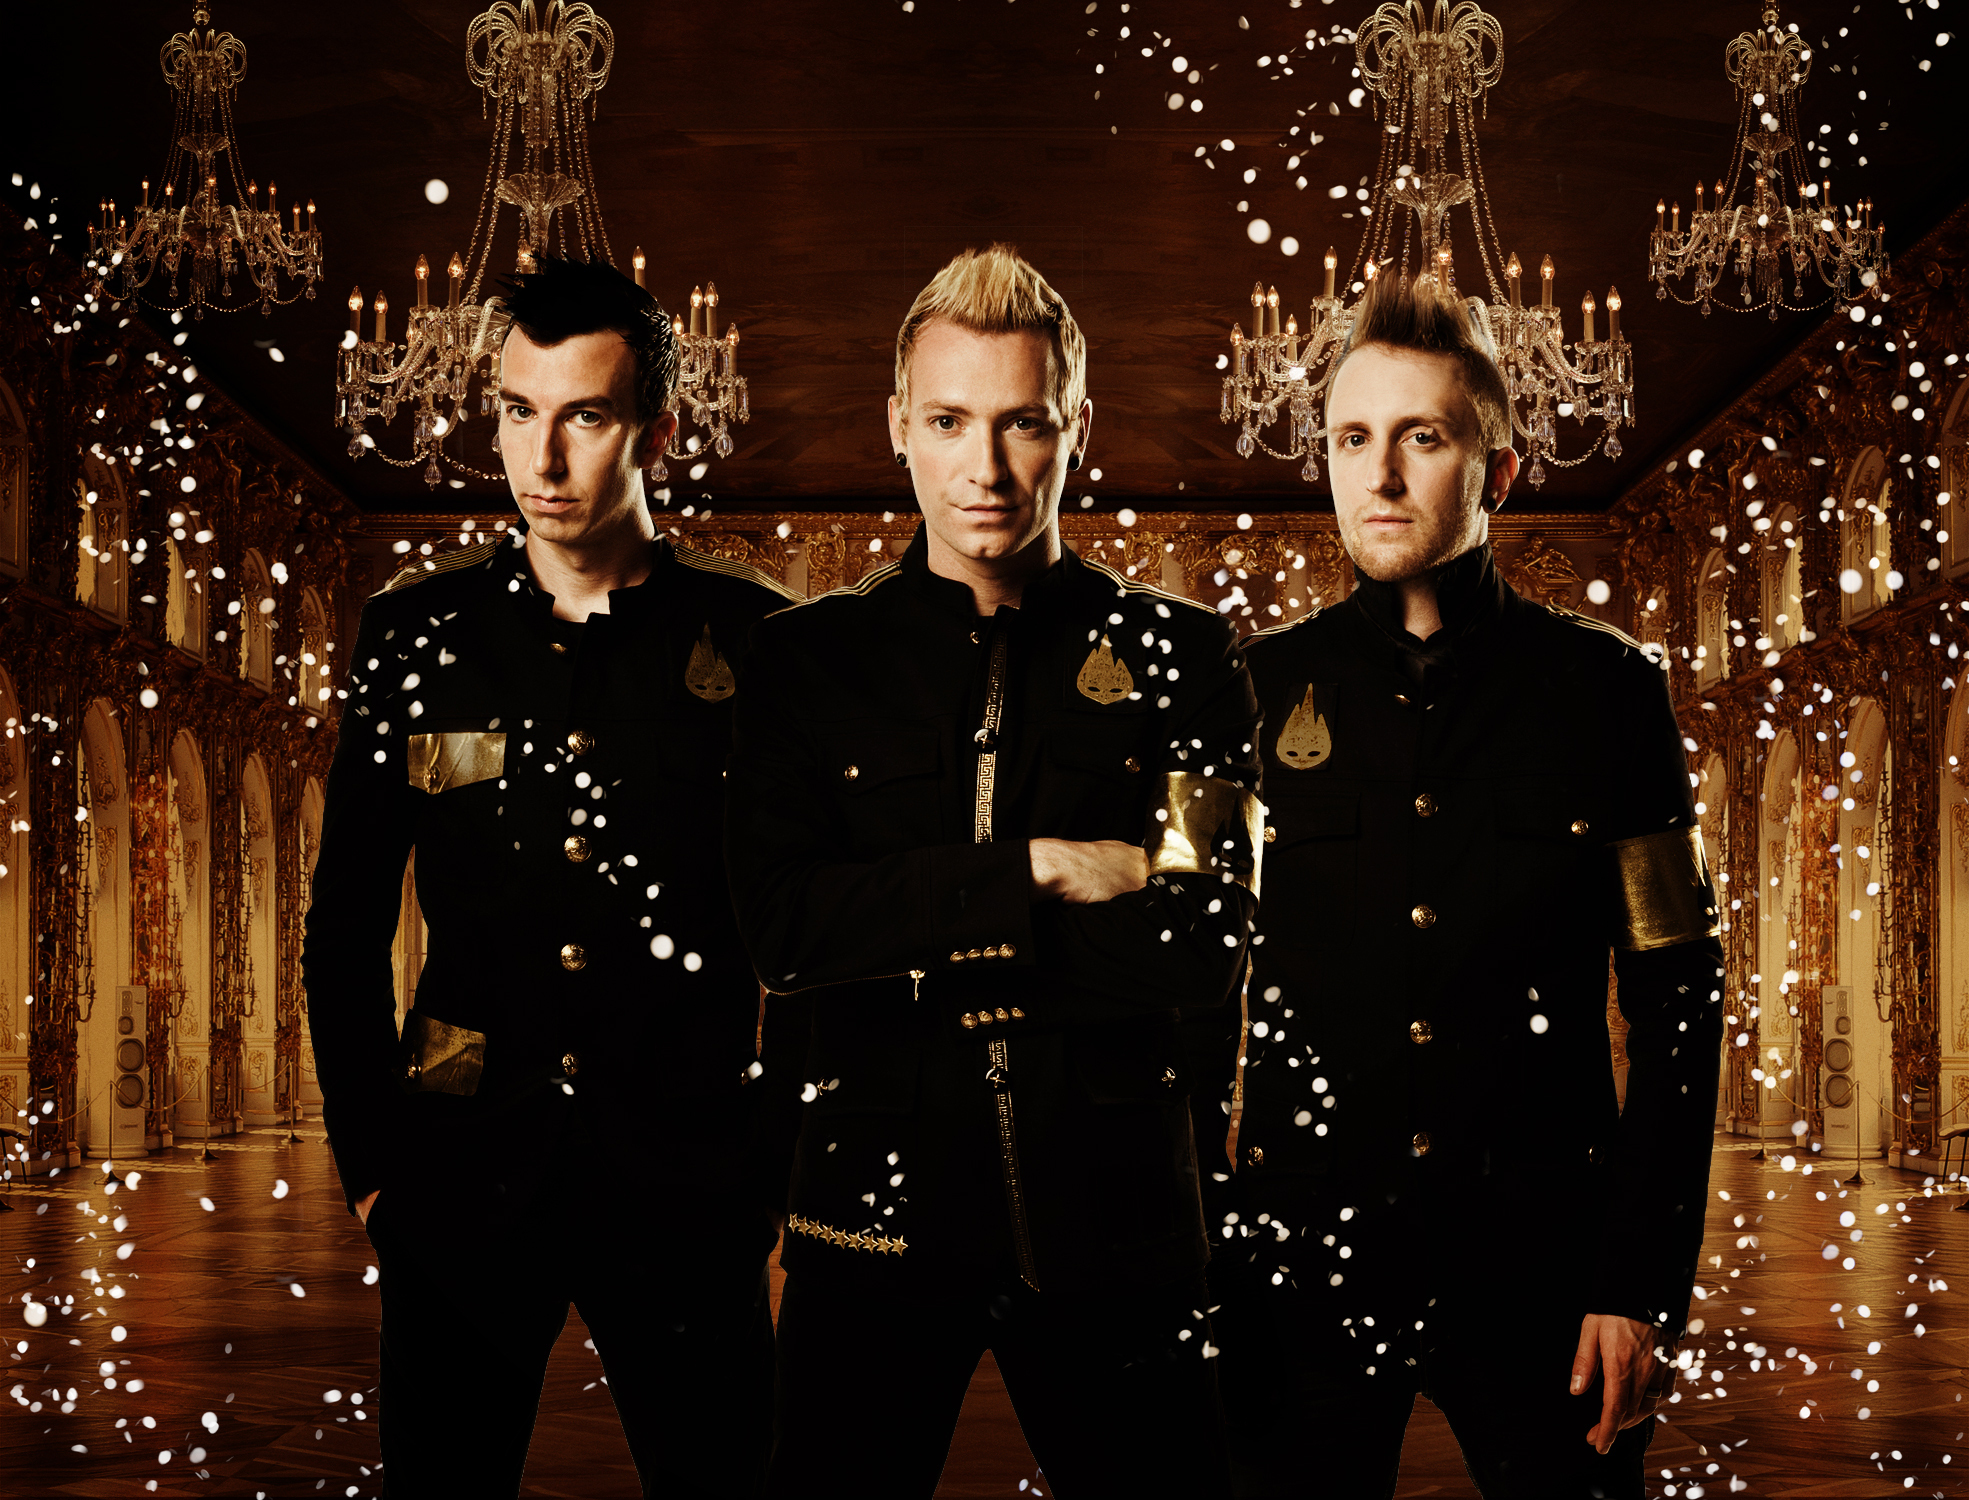 Thousand Foot Krutch images TFK gifs HD wallpaper and background 1969x1500